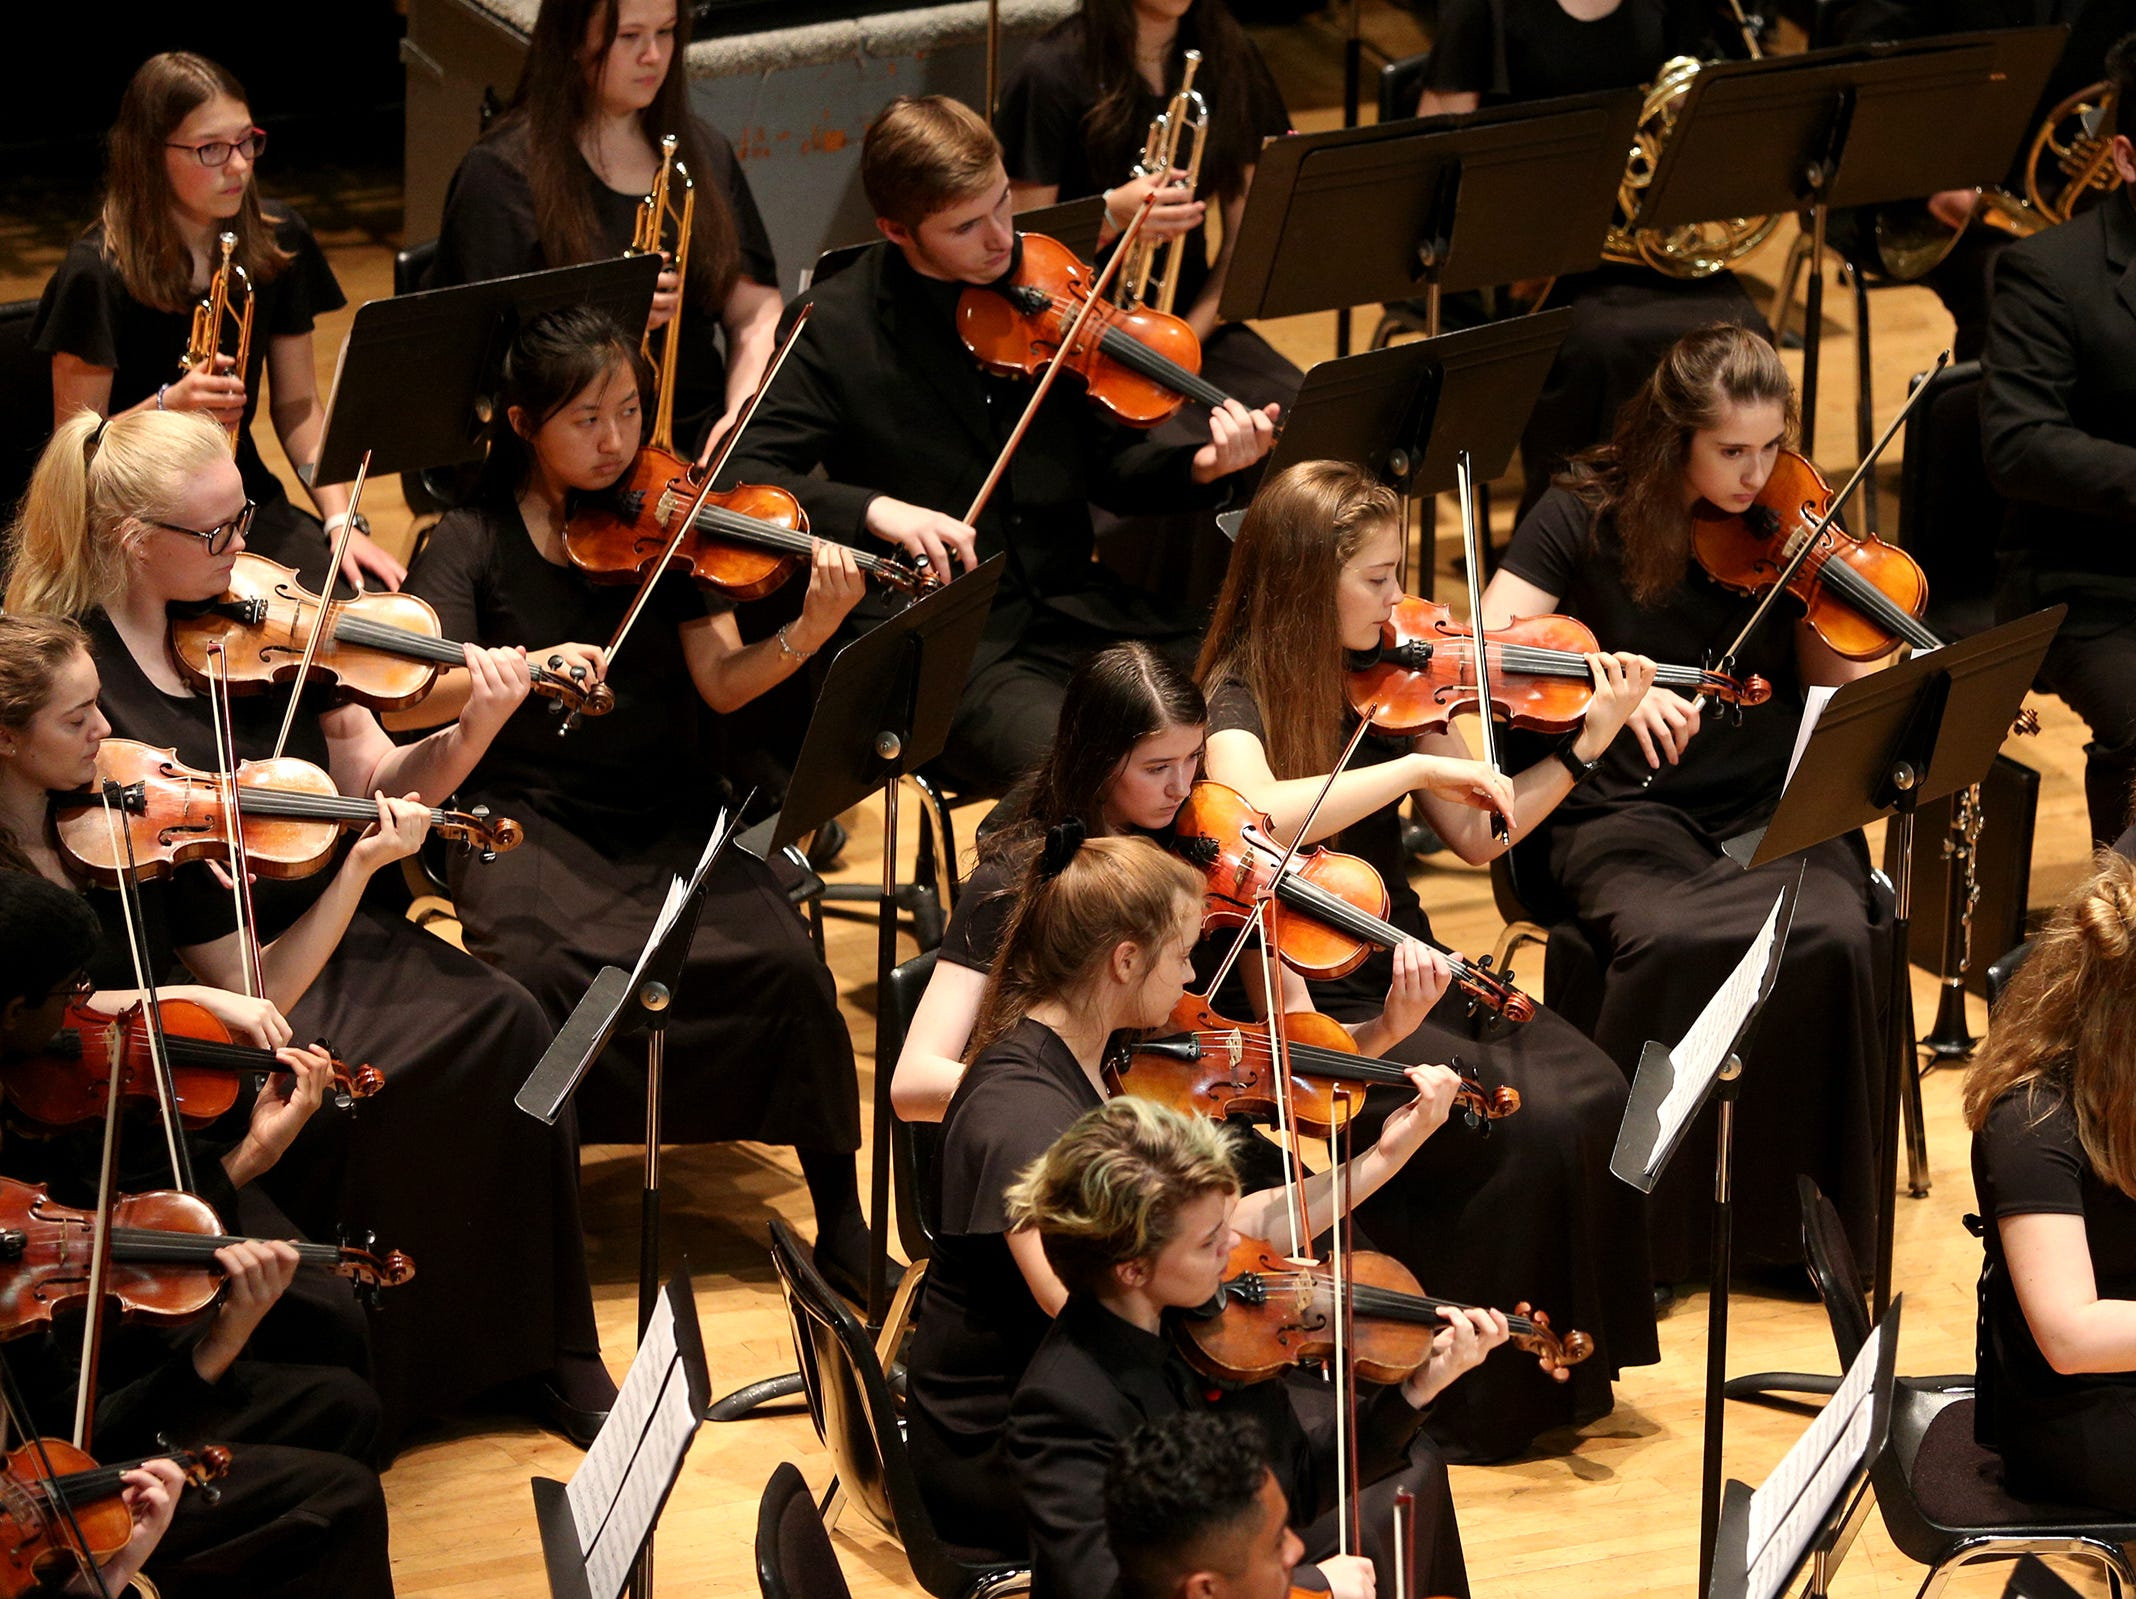 South Salem High School's Orchestra, under the direction of Damian Berdakin, performs at the OSAA 6A Orchestra State Championships at Oregon State University in Corvallis on May 9, 2019.